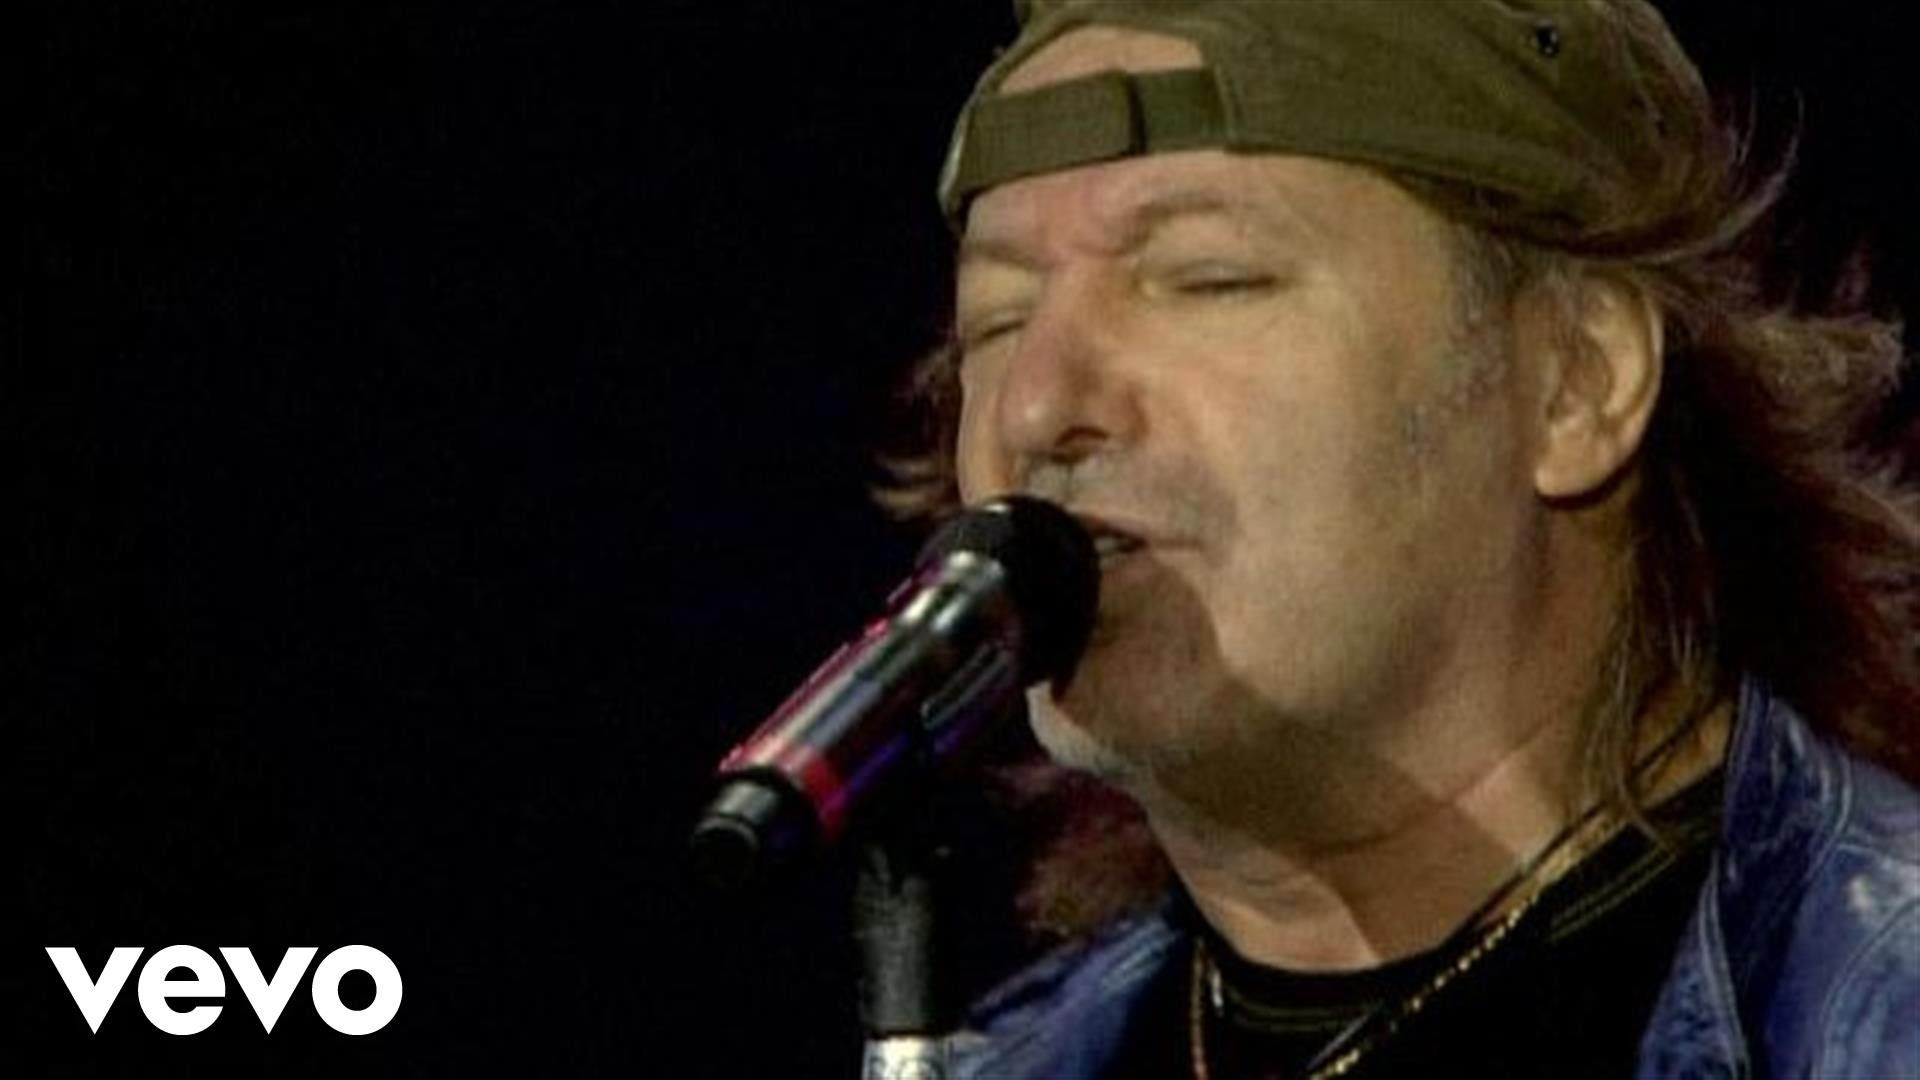 Vasco Rossi Colpa Del Whisky Vasco Rossi Vieni Qui 2000 S Best Music Video Musicali